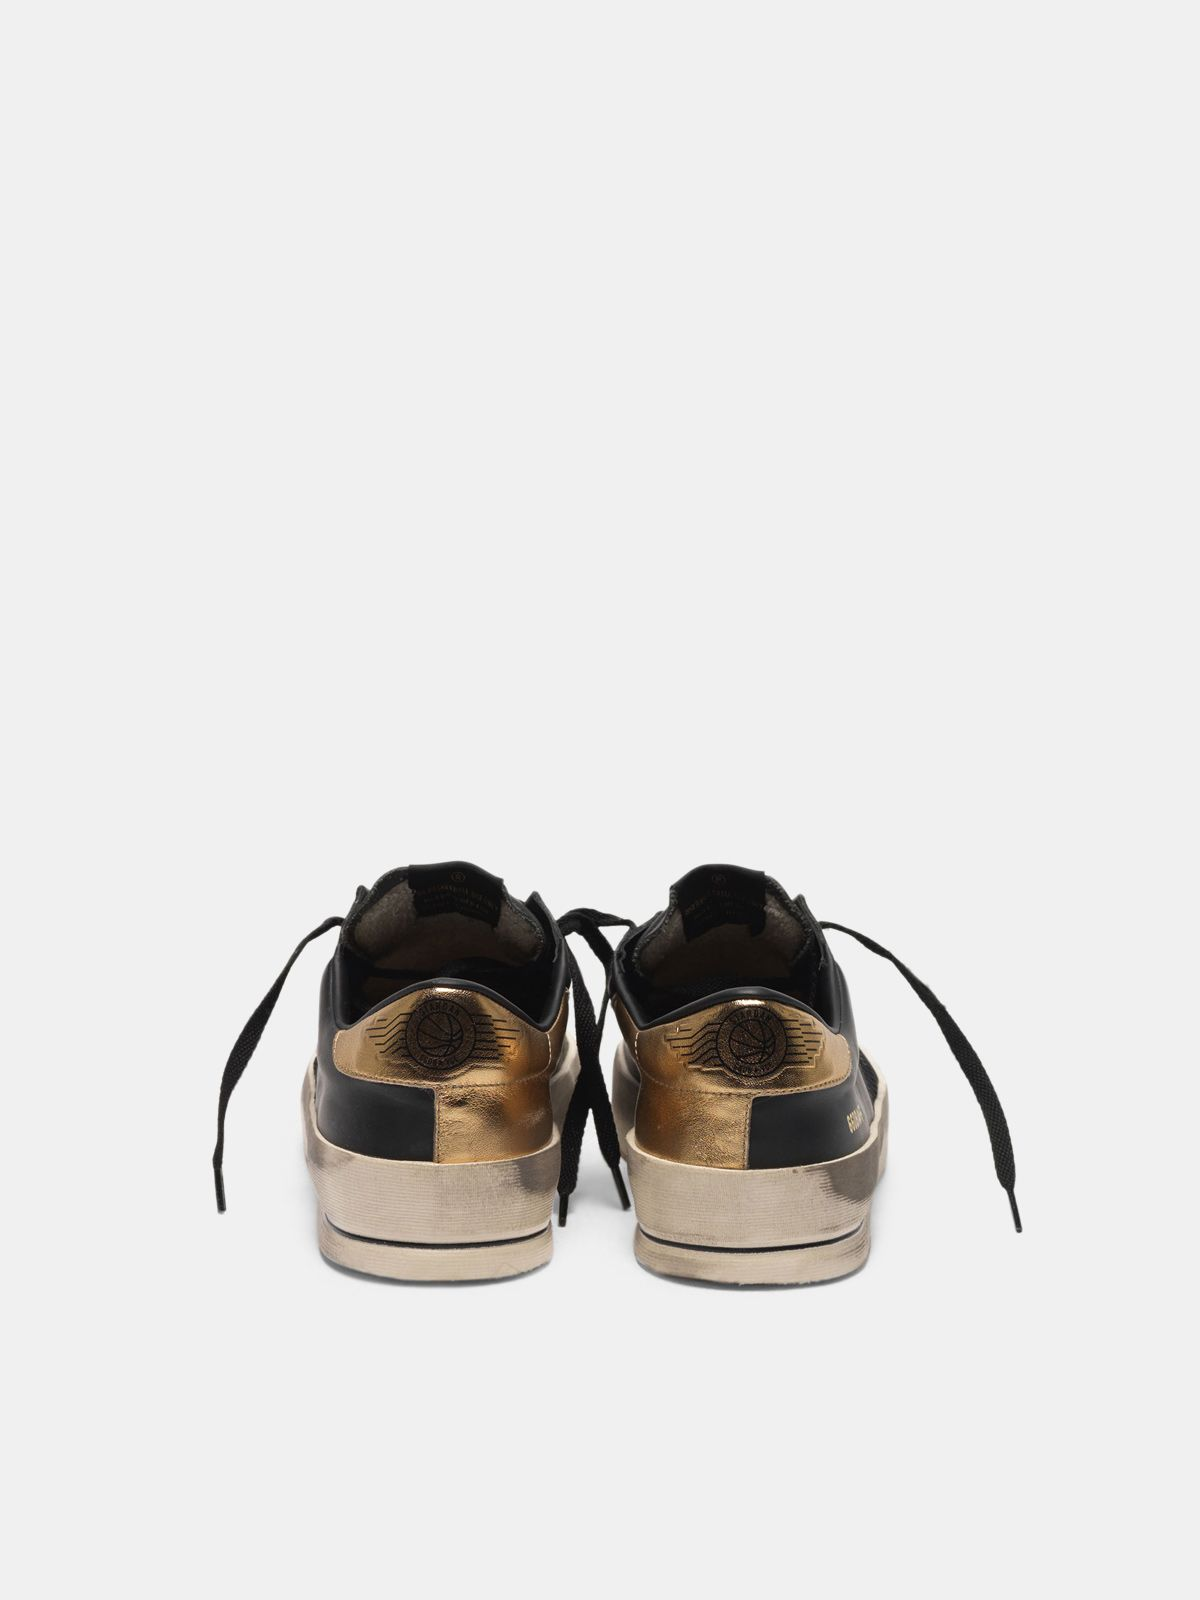 Golden Goose - Stardan sneakers in leather with mesh inserts in